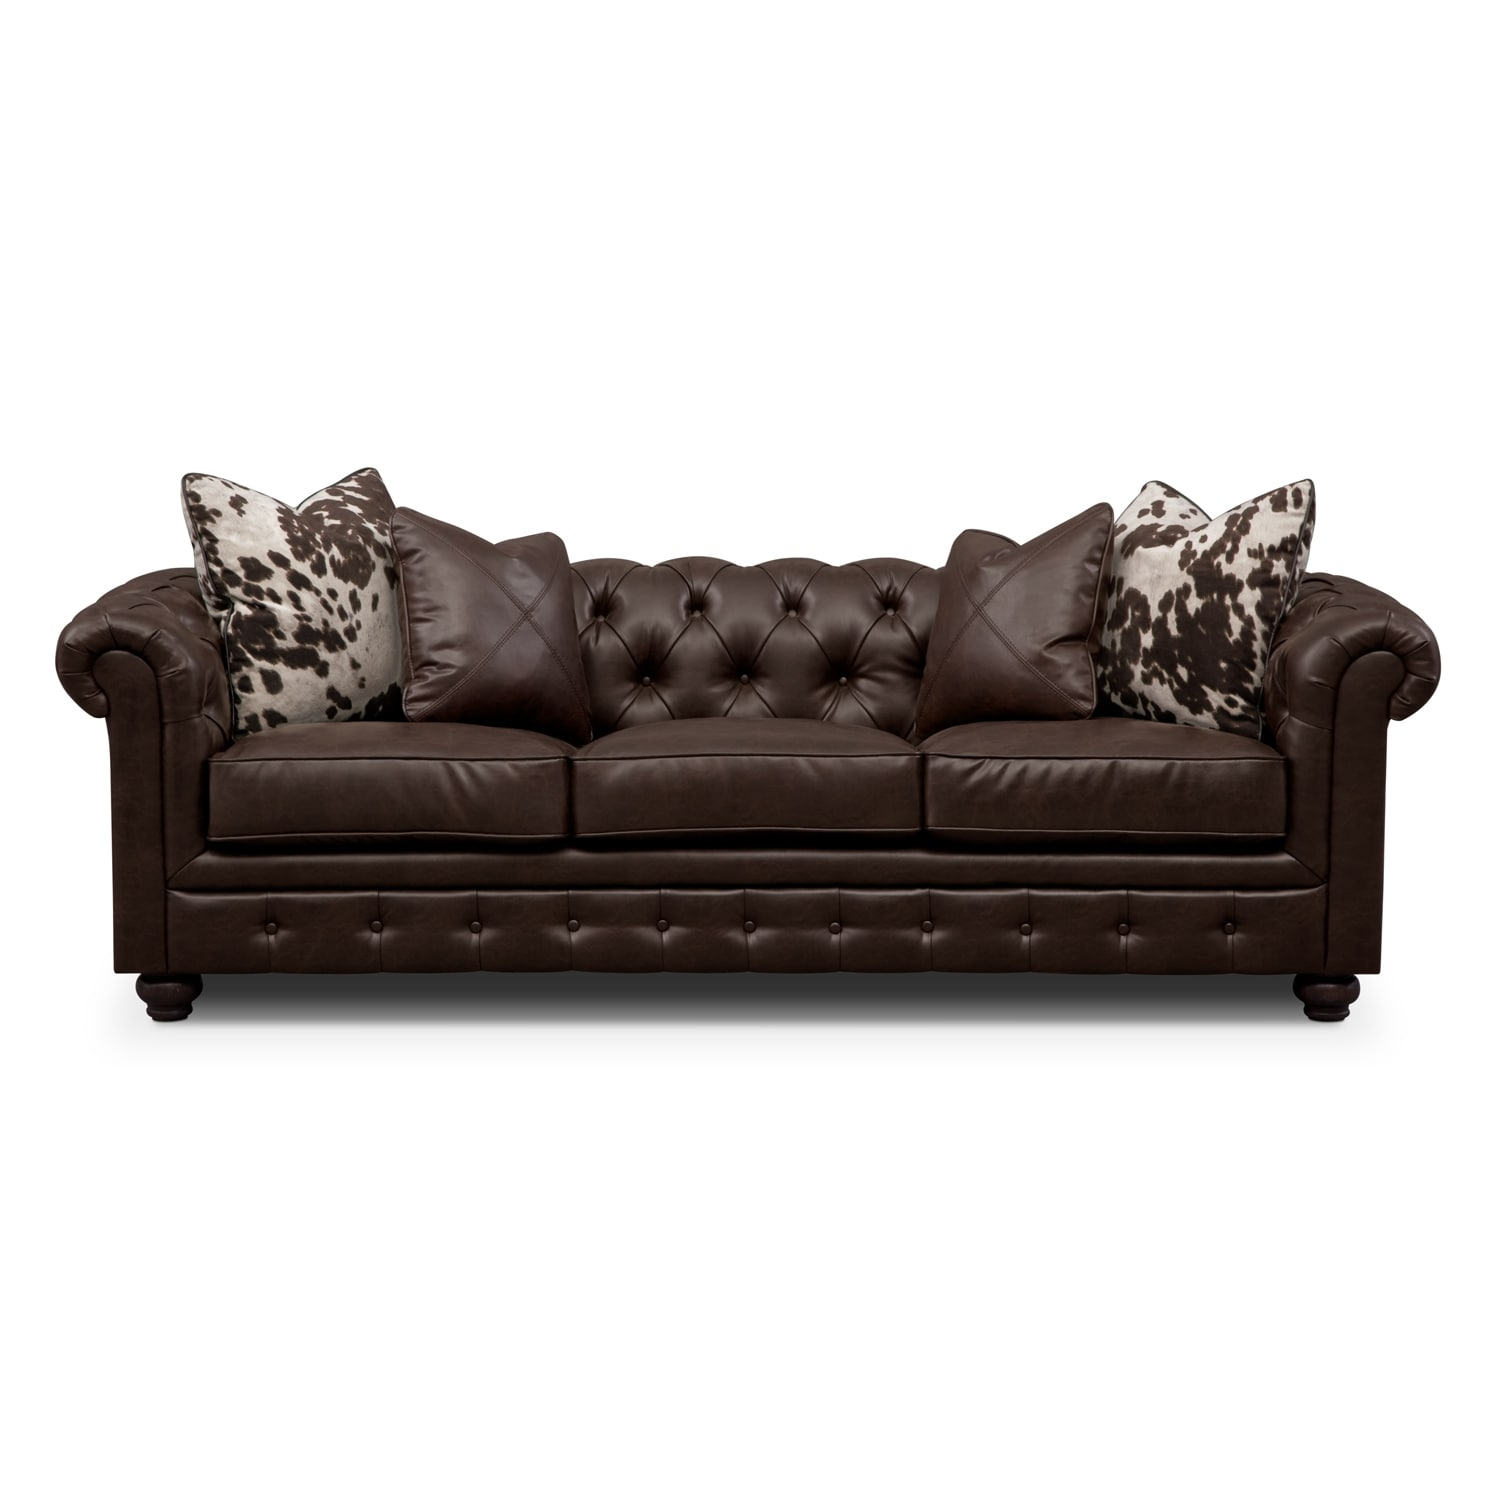 Value City Furniture Leather Living Room Sets Zion Star